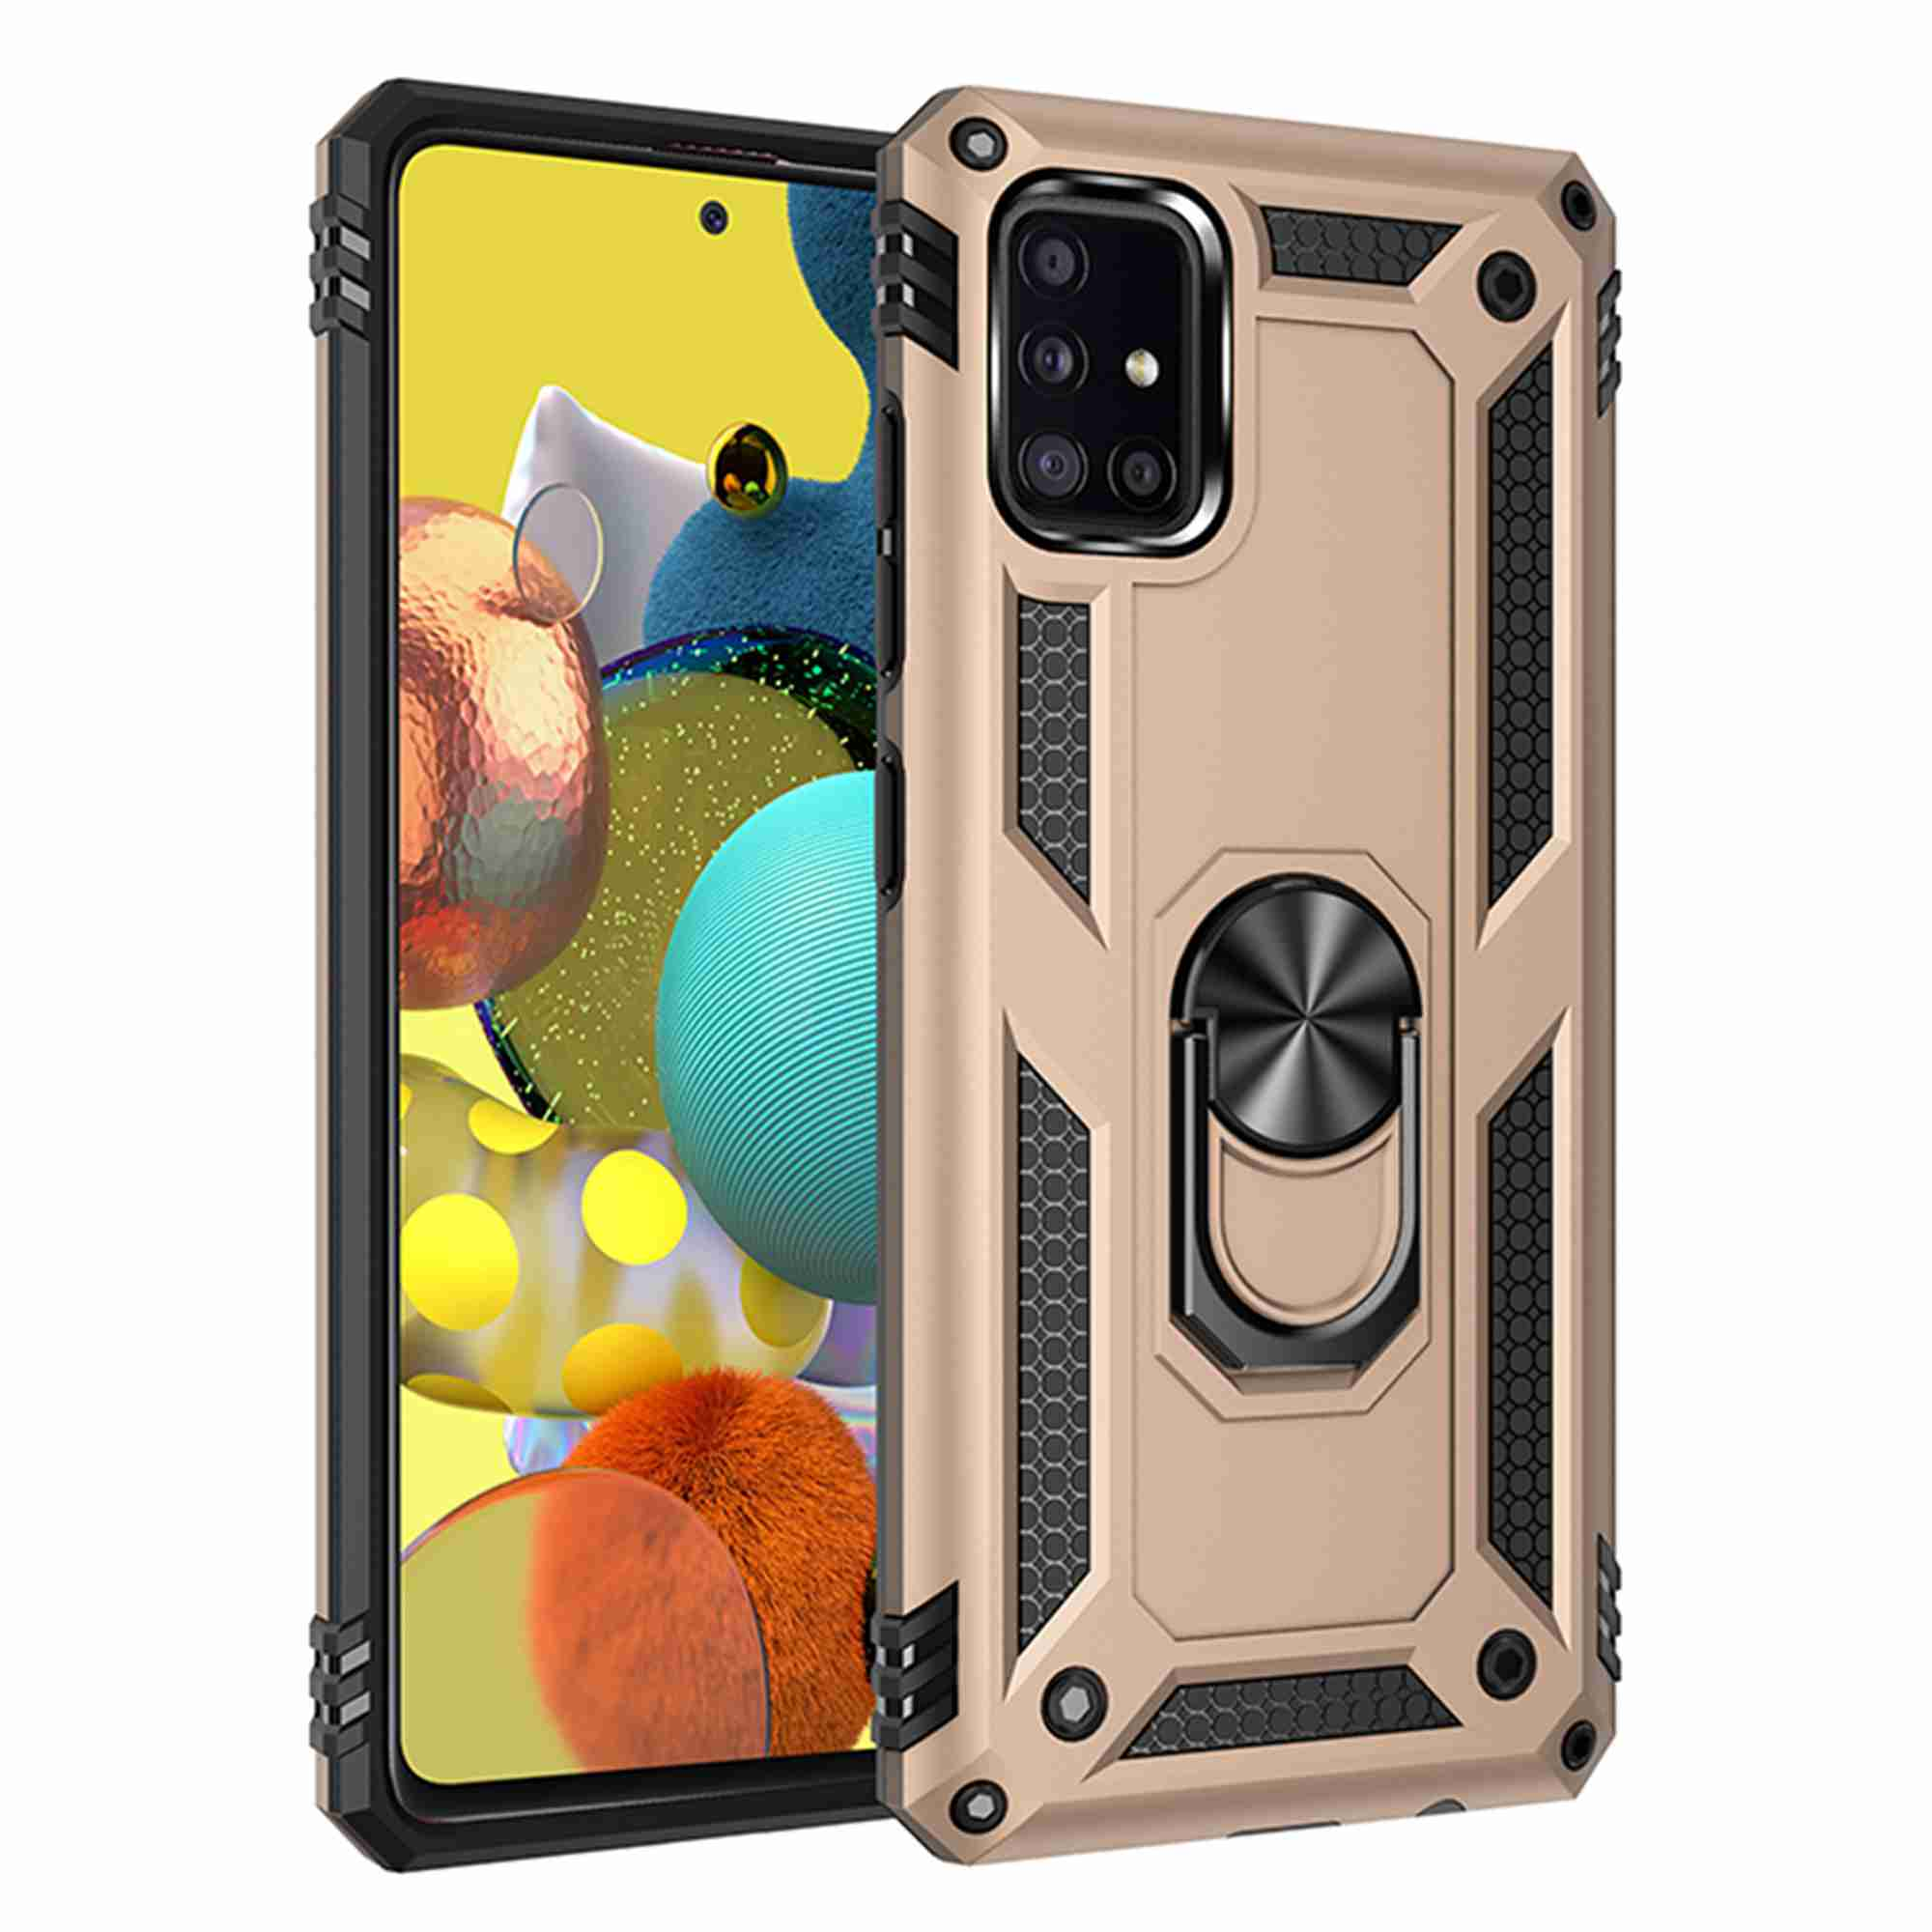 Dteck Heavy Duty Shockproof Case For Samsung A71 5g Not Fit A71 5g Uw Verizon Not Fit For A71 4g Metal Magnetic Ring Holder Protive Armor Phone Cover Kickstand For Samsung Galaxy